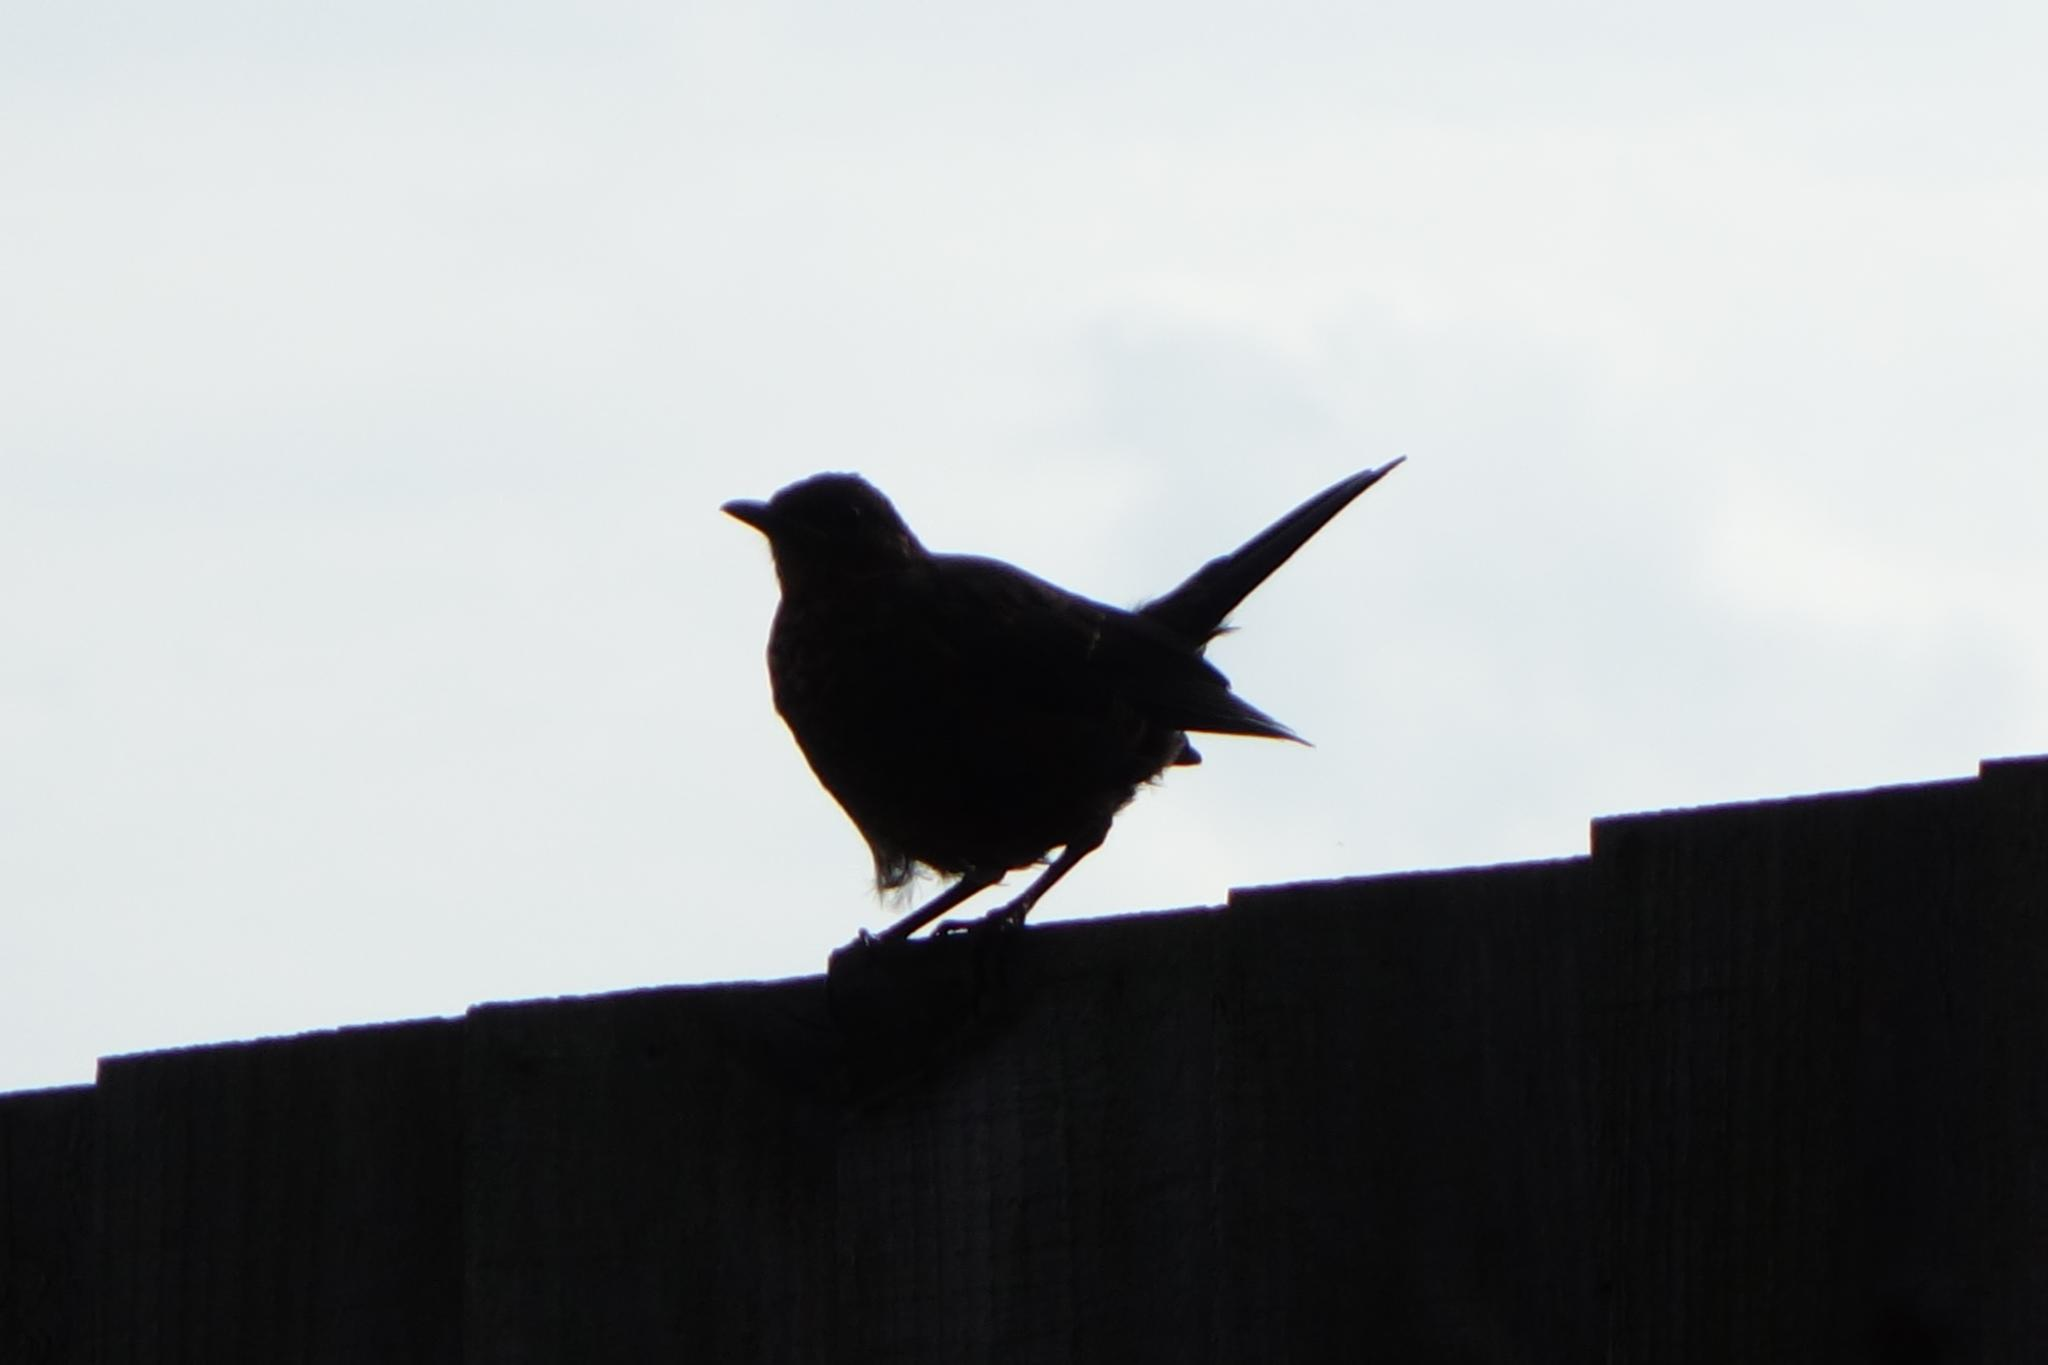 Blackbird Silhouette by RonKelly